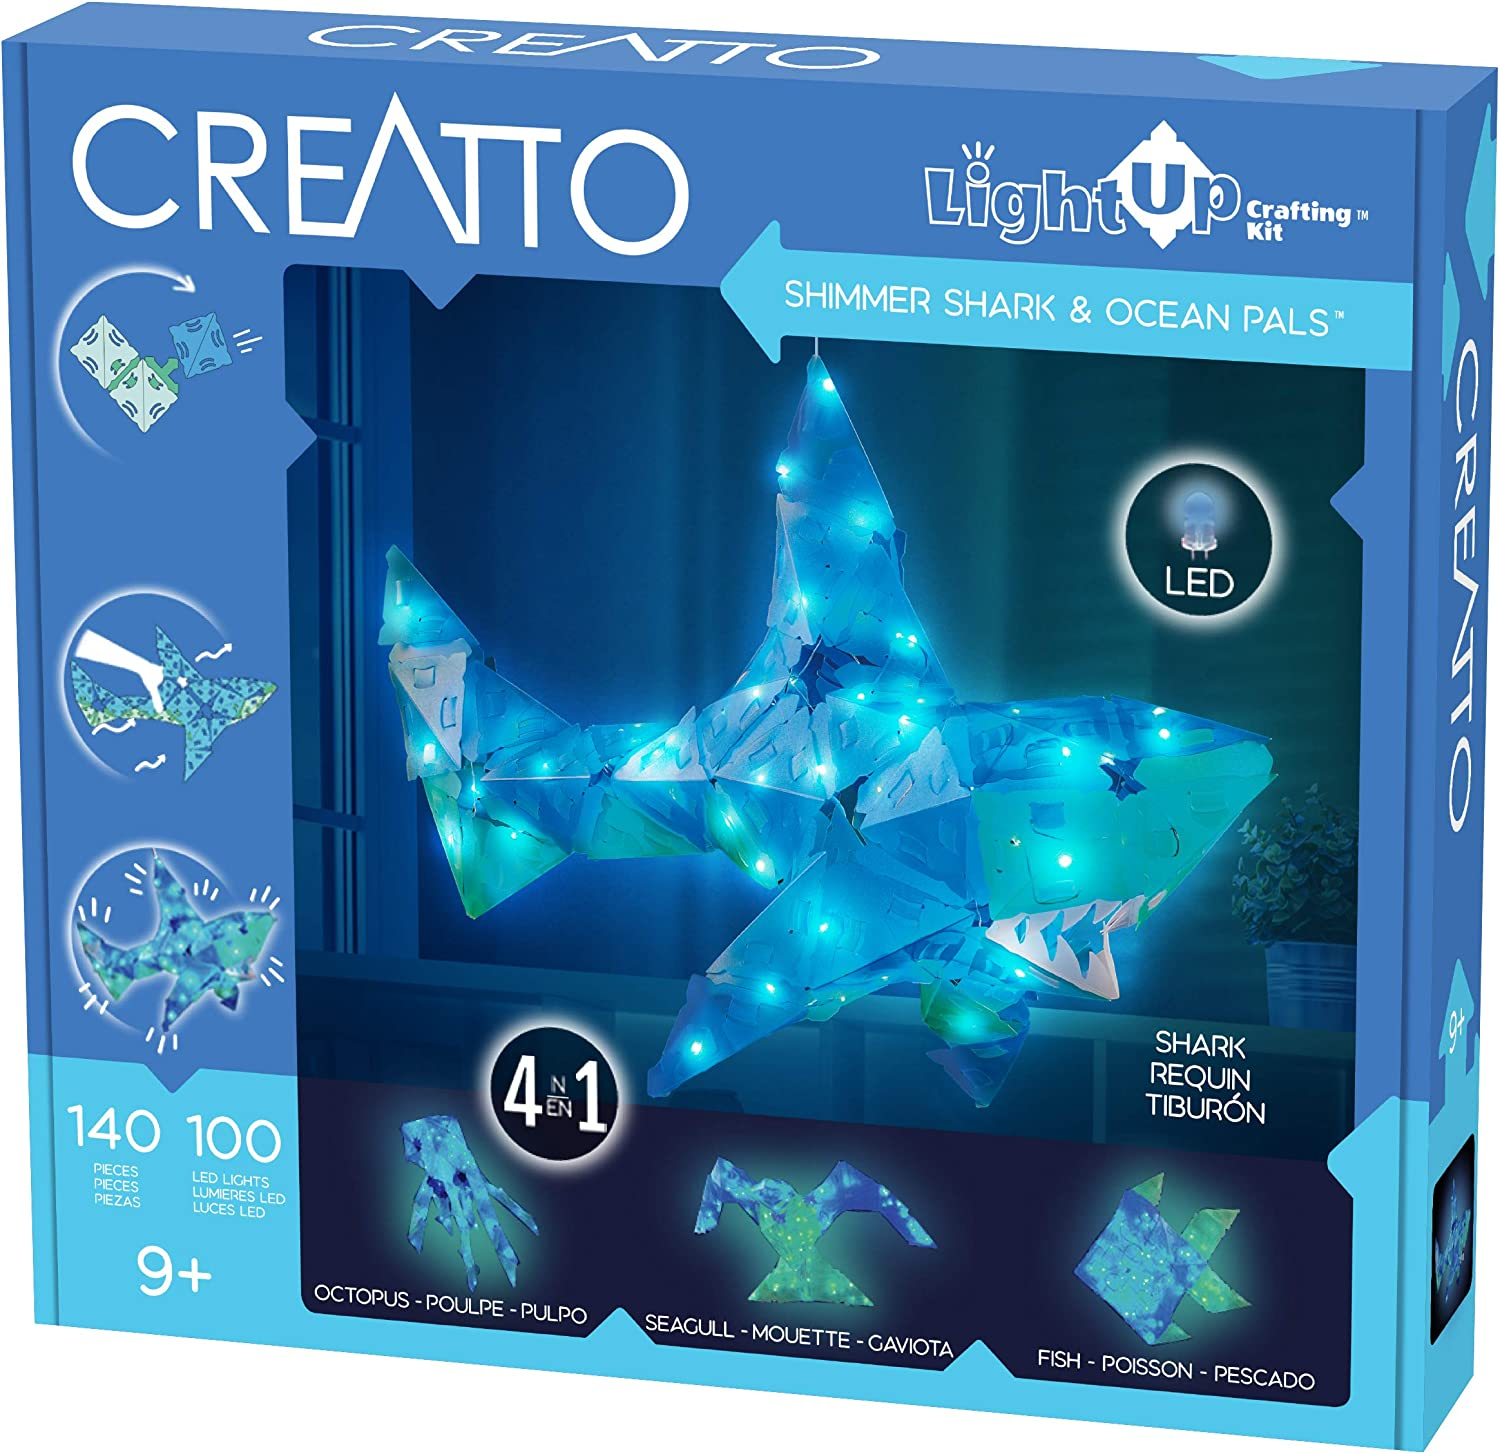 Thames & Kosmos Creatto Shimmer Shark & Ocean Pals | Light-Up Crafting Kit from Make Your Own Illuminated 3D Crafts, Décor & Lamp | Shark, Octopus, Seagull & Fish | DIY Activity Kit & LED Lights